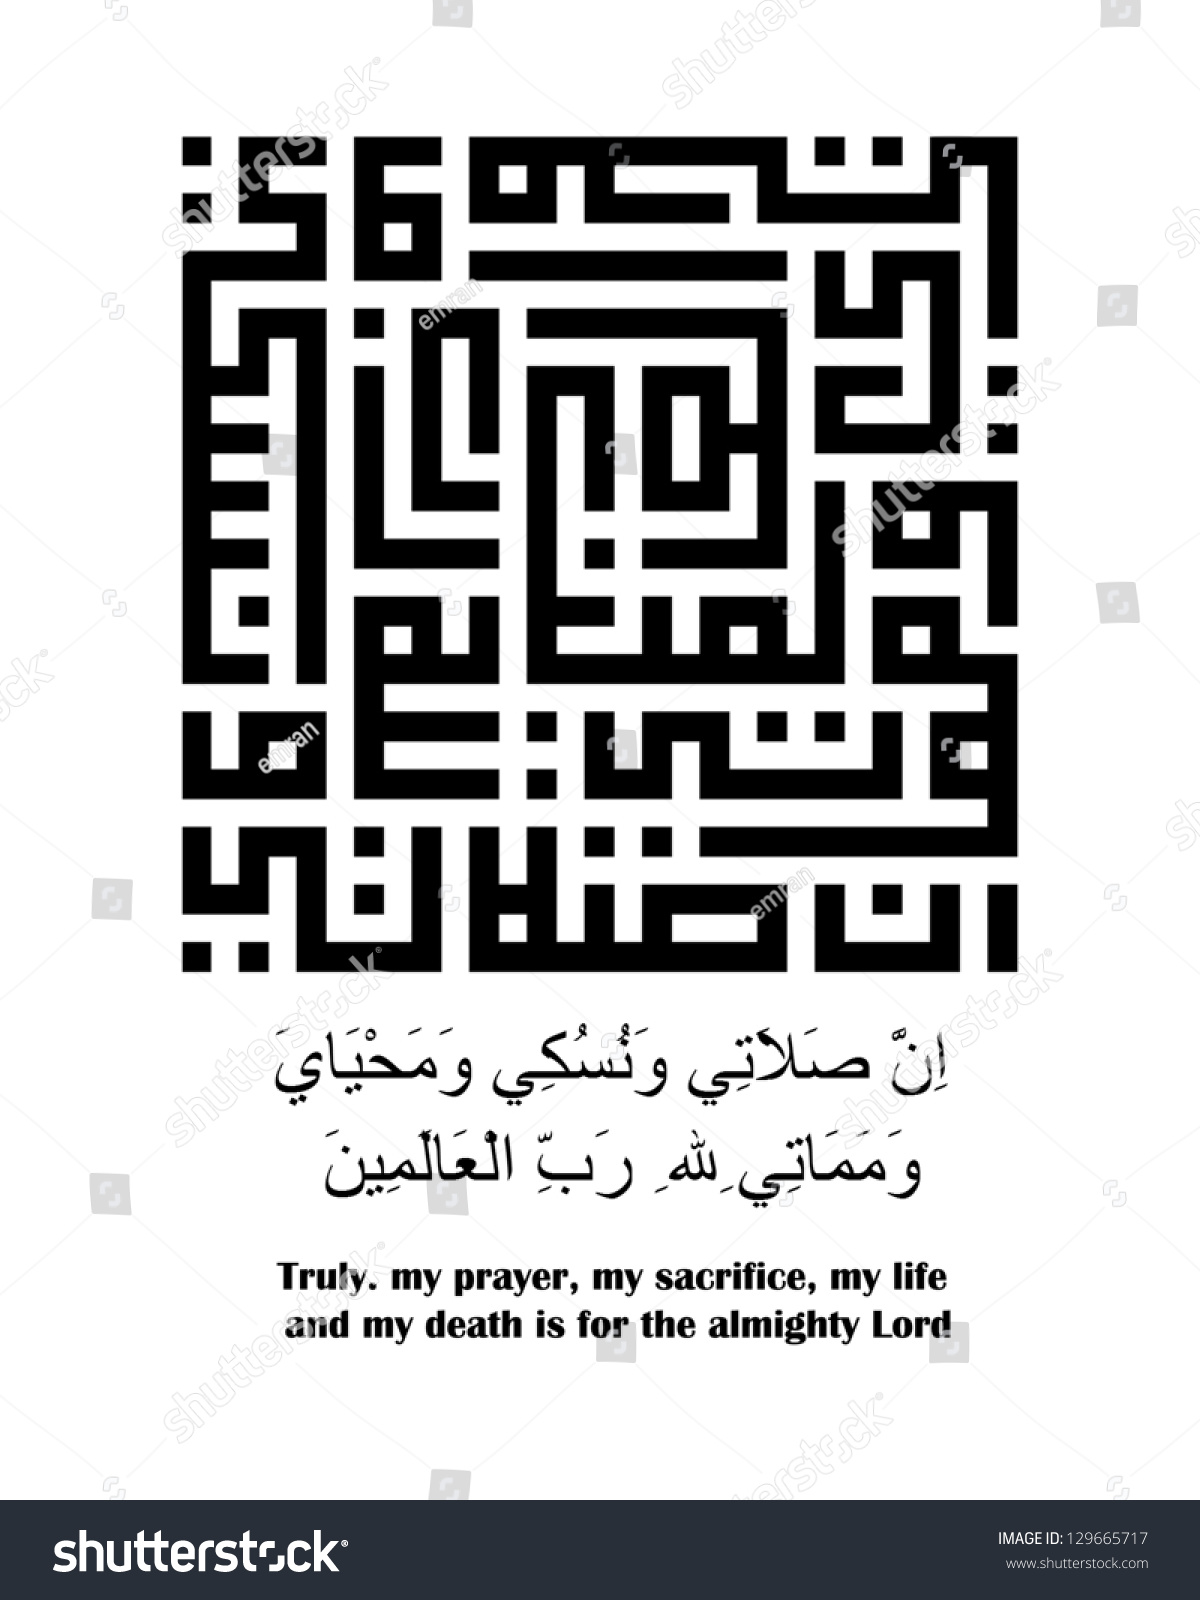 A kufi square kufic murabba arabic calligraphy version